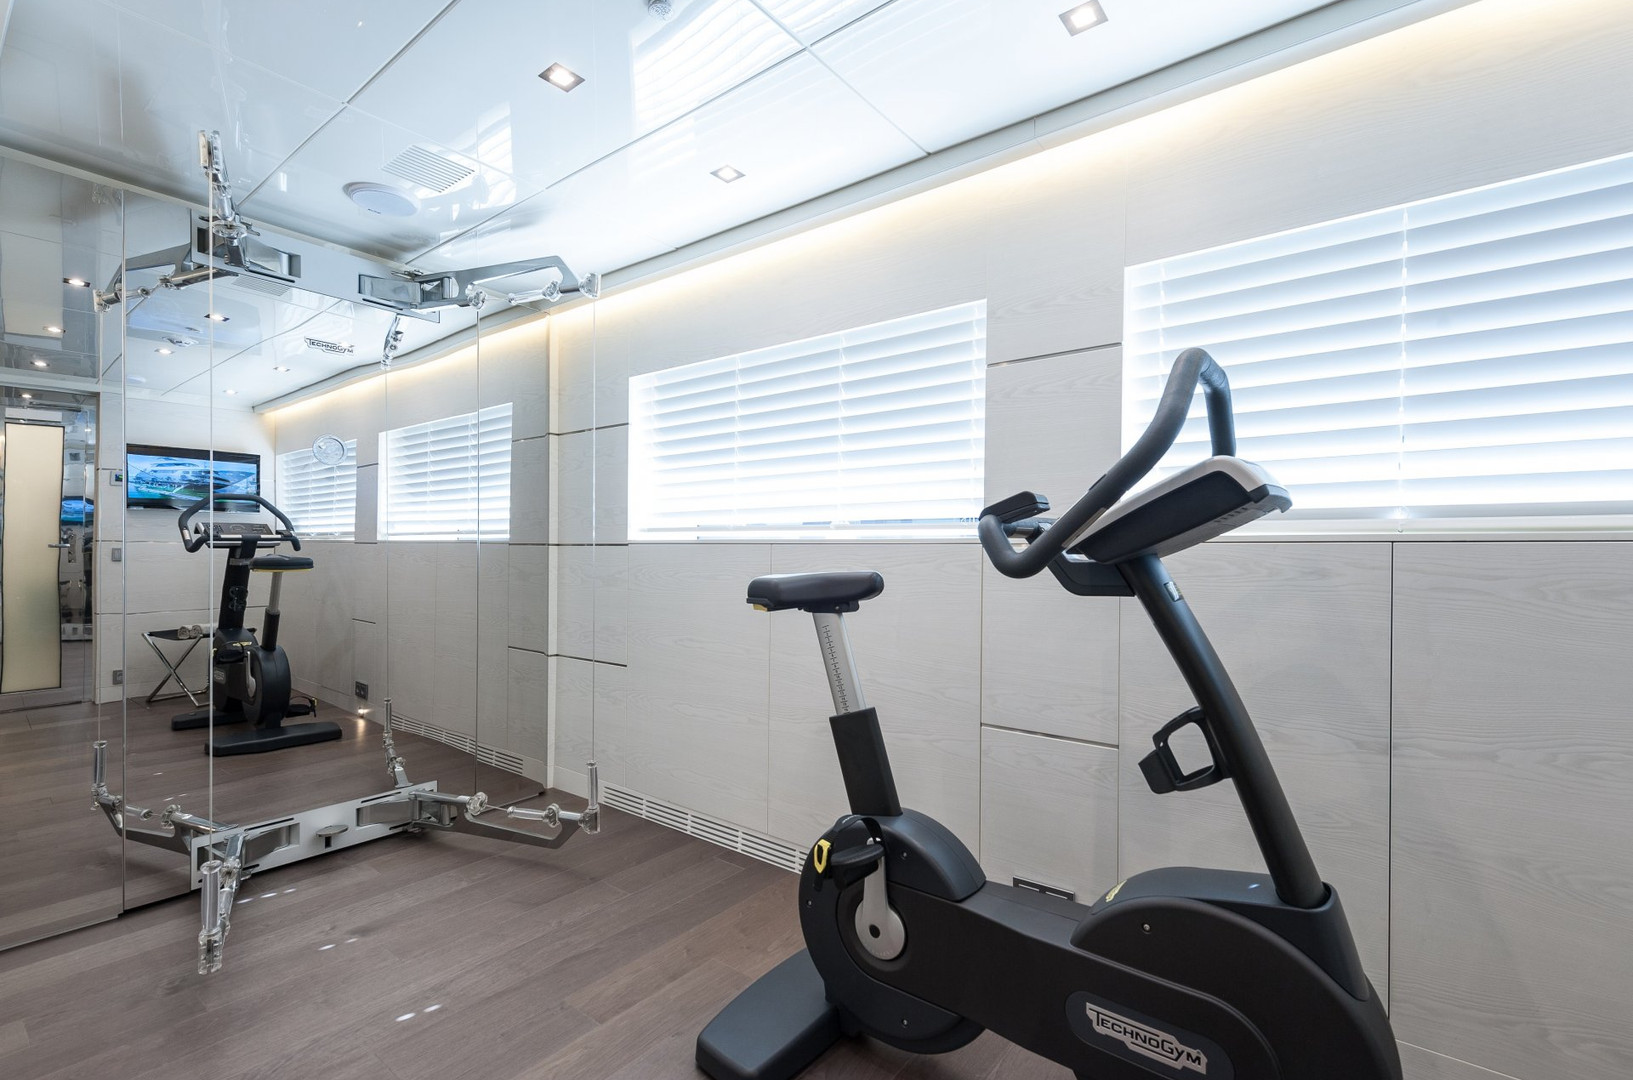 Yacht ENTOURAGE - owner's private gym